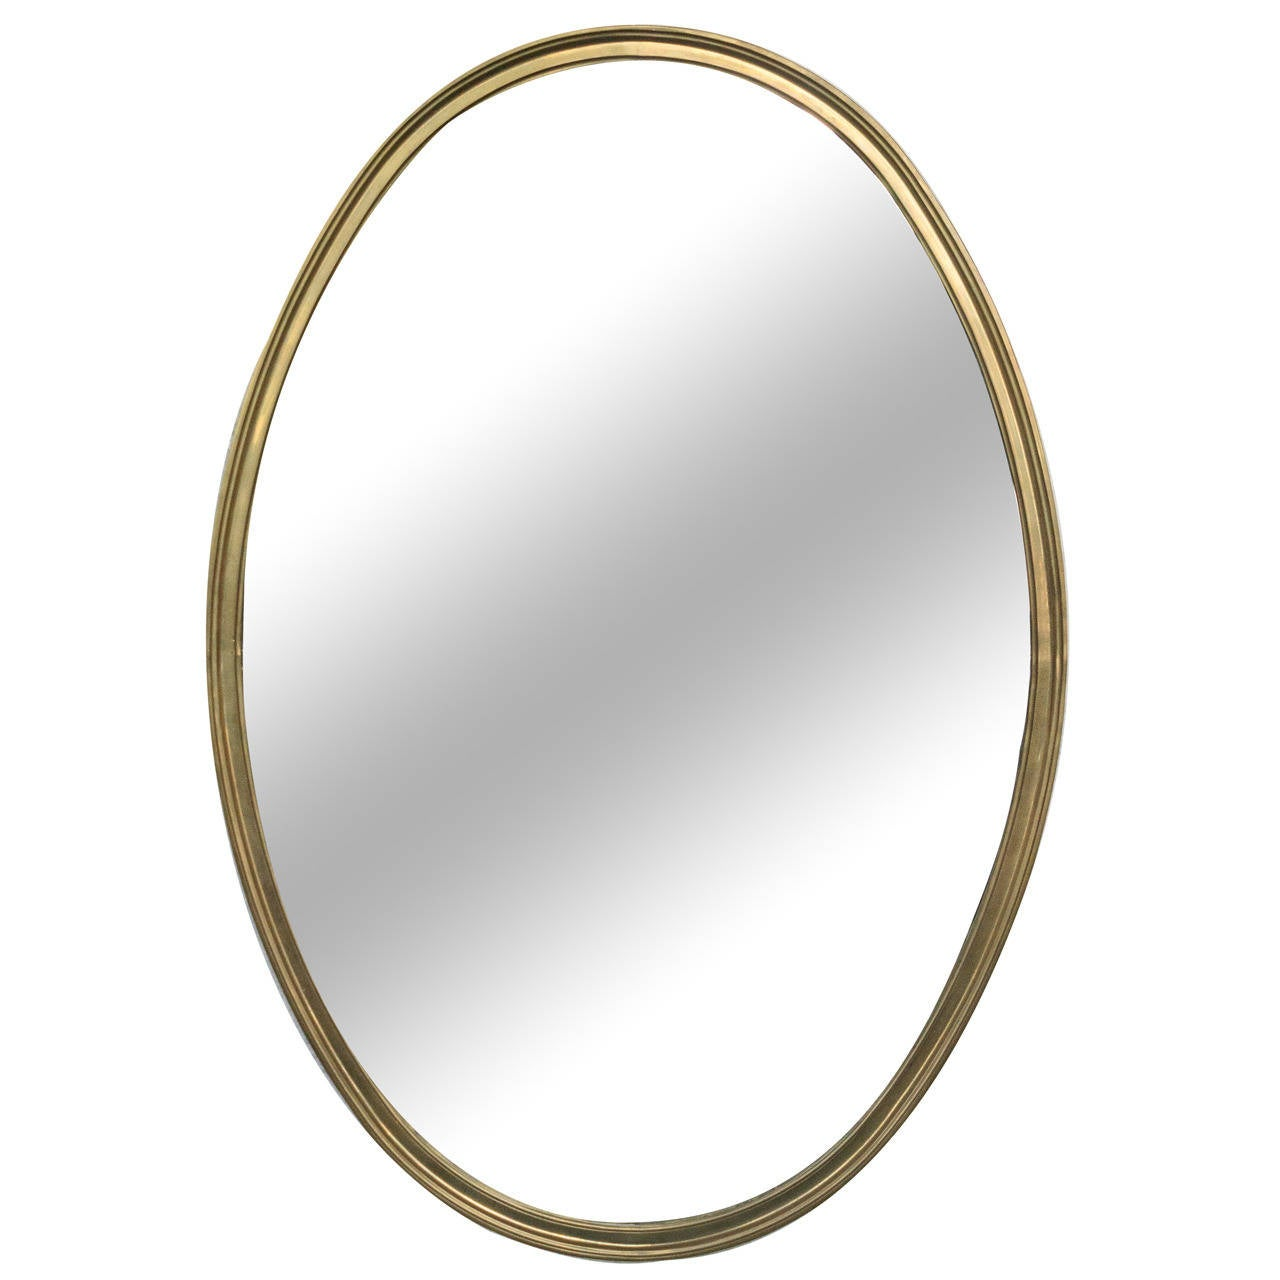 1950s French Brass Oval-Shaped Mirror at 1stdibs